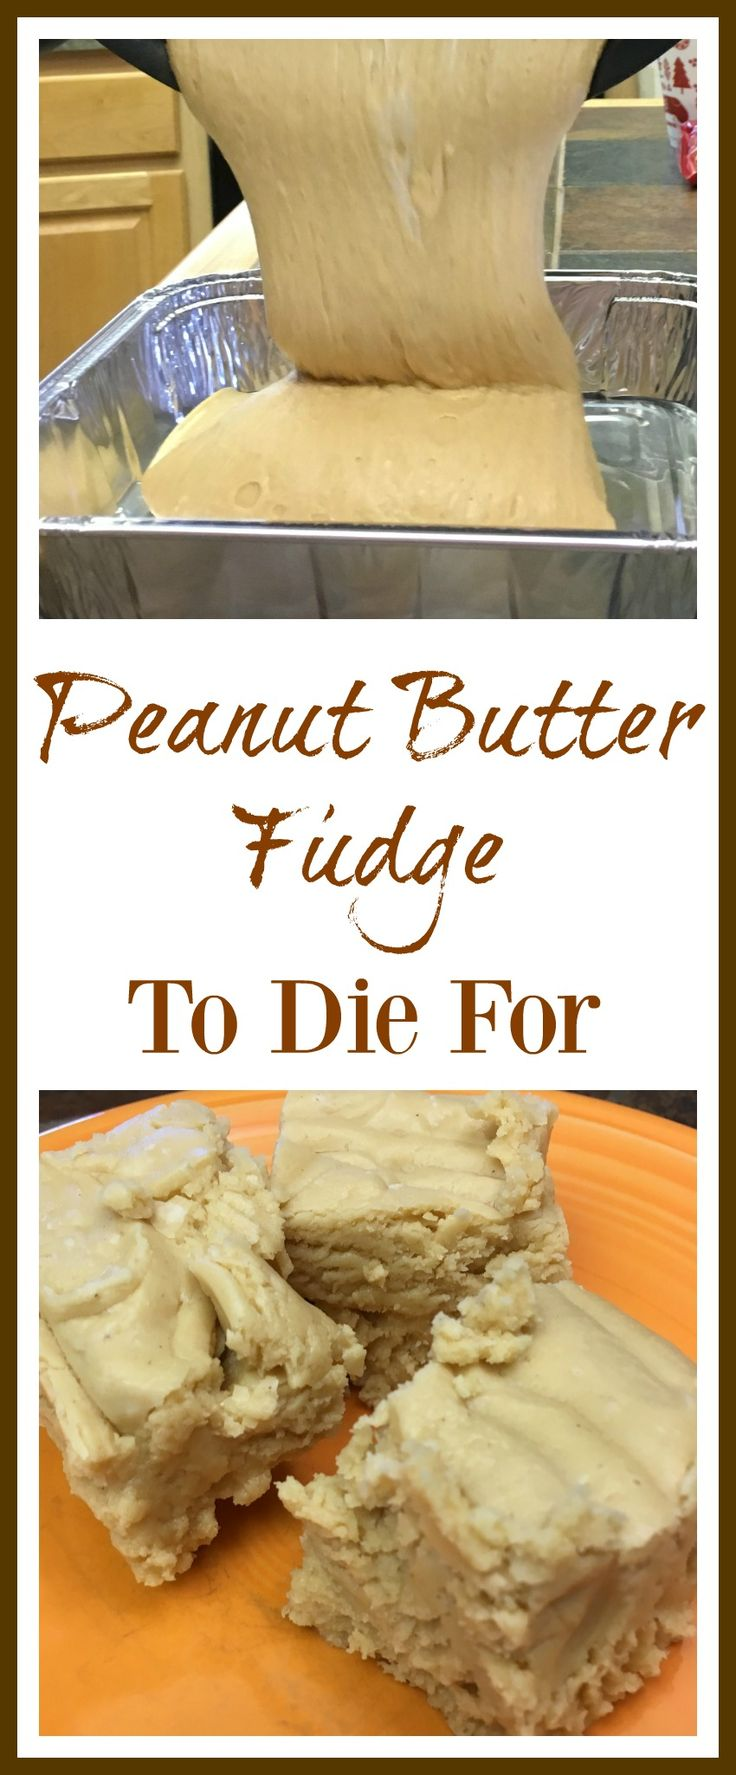 Peanut butter fudge is so simple to make. There's only one difference between peanut butter and regular chocolate fudge...the chips.